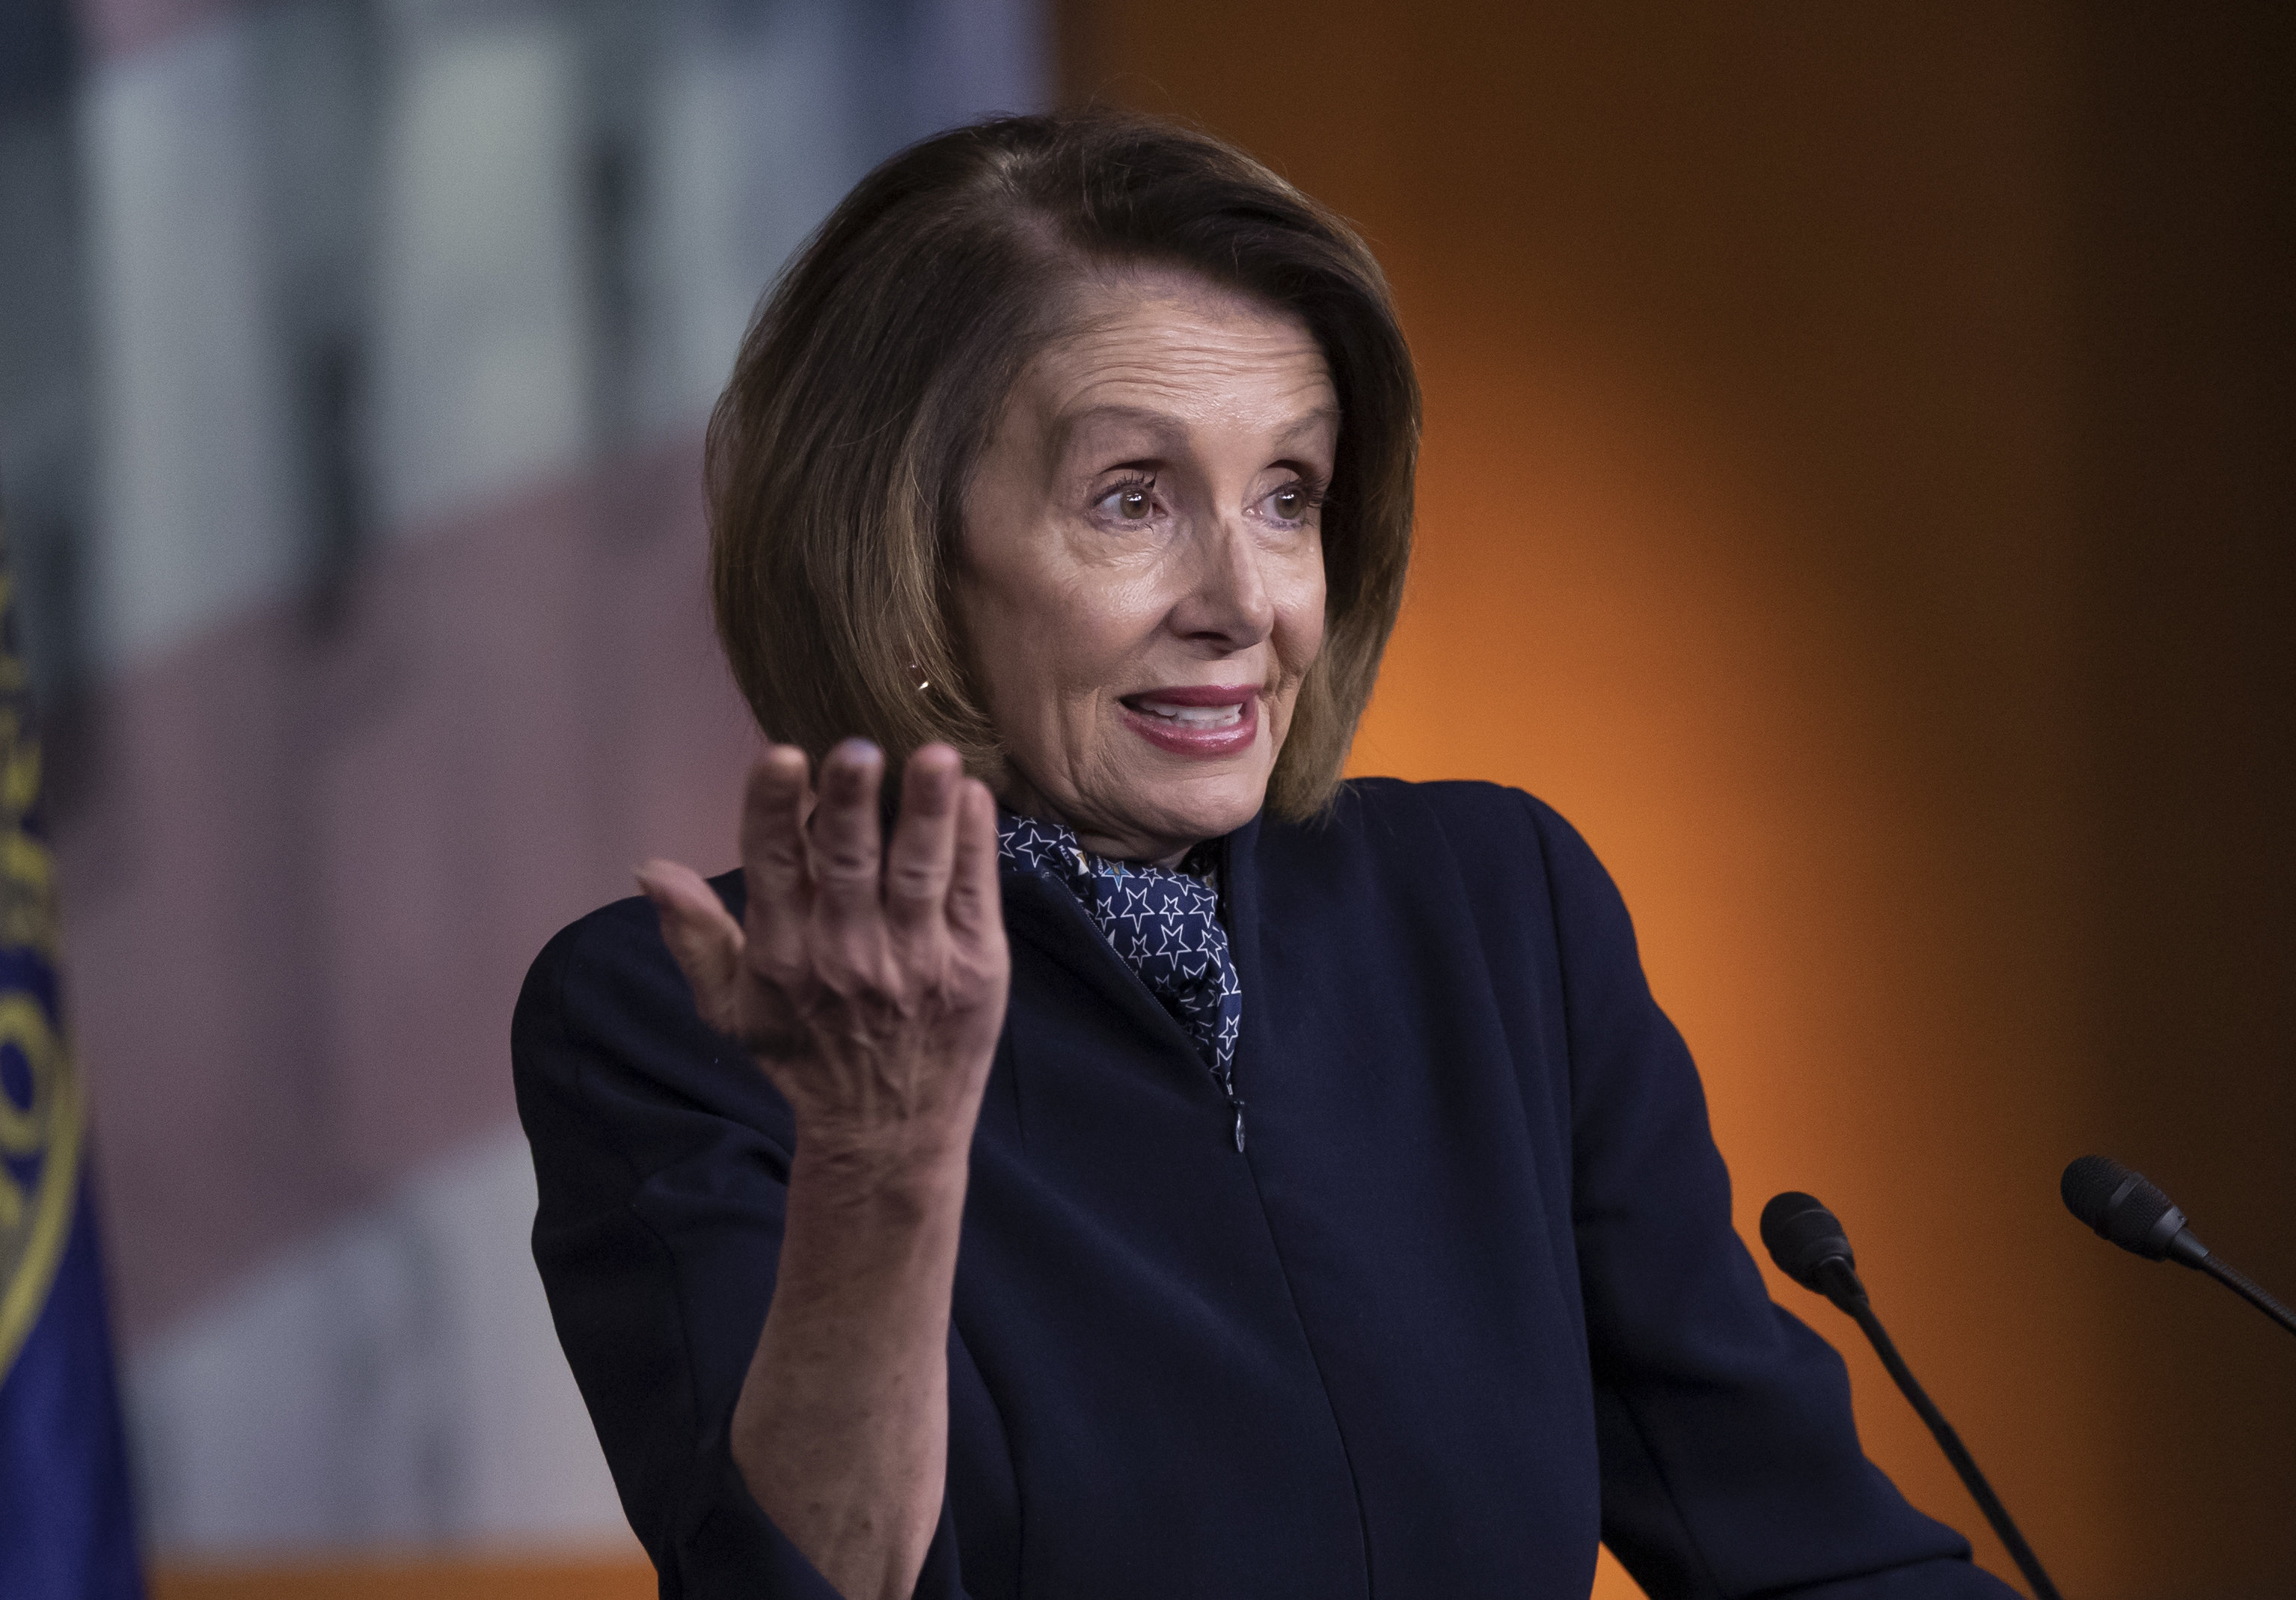 House Democratic leader Nancy Pelosi of California holds a news conference at the Capitol in Washington, Dec. 13, 2018.